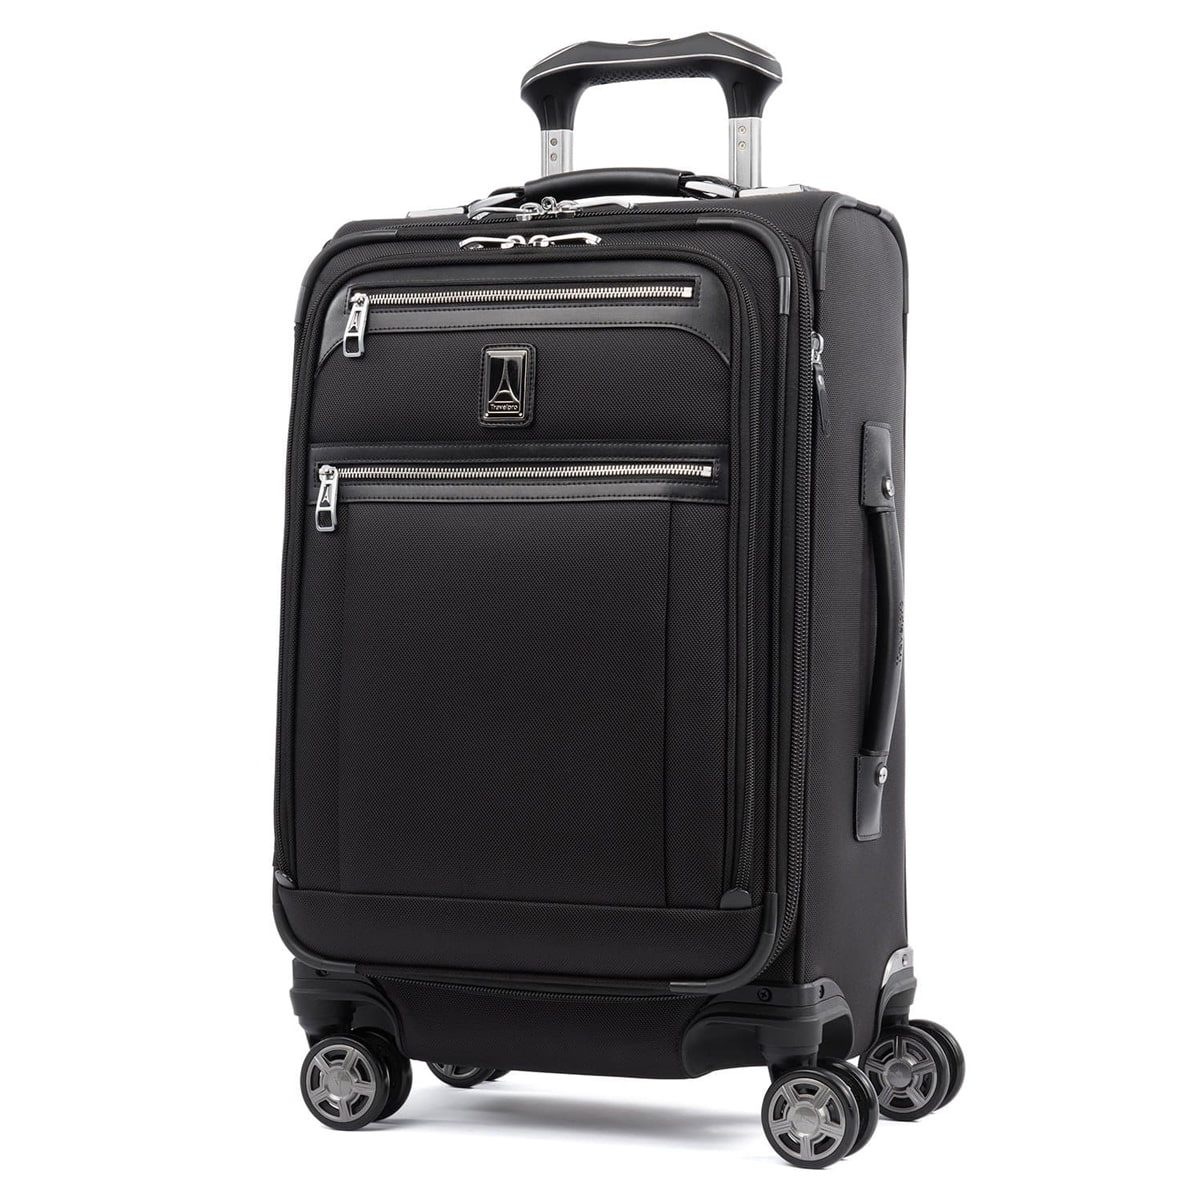 Travelpro Carry-On Spinner